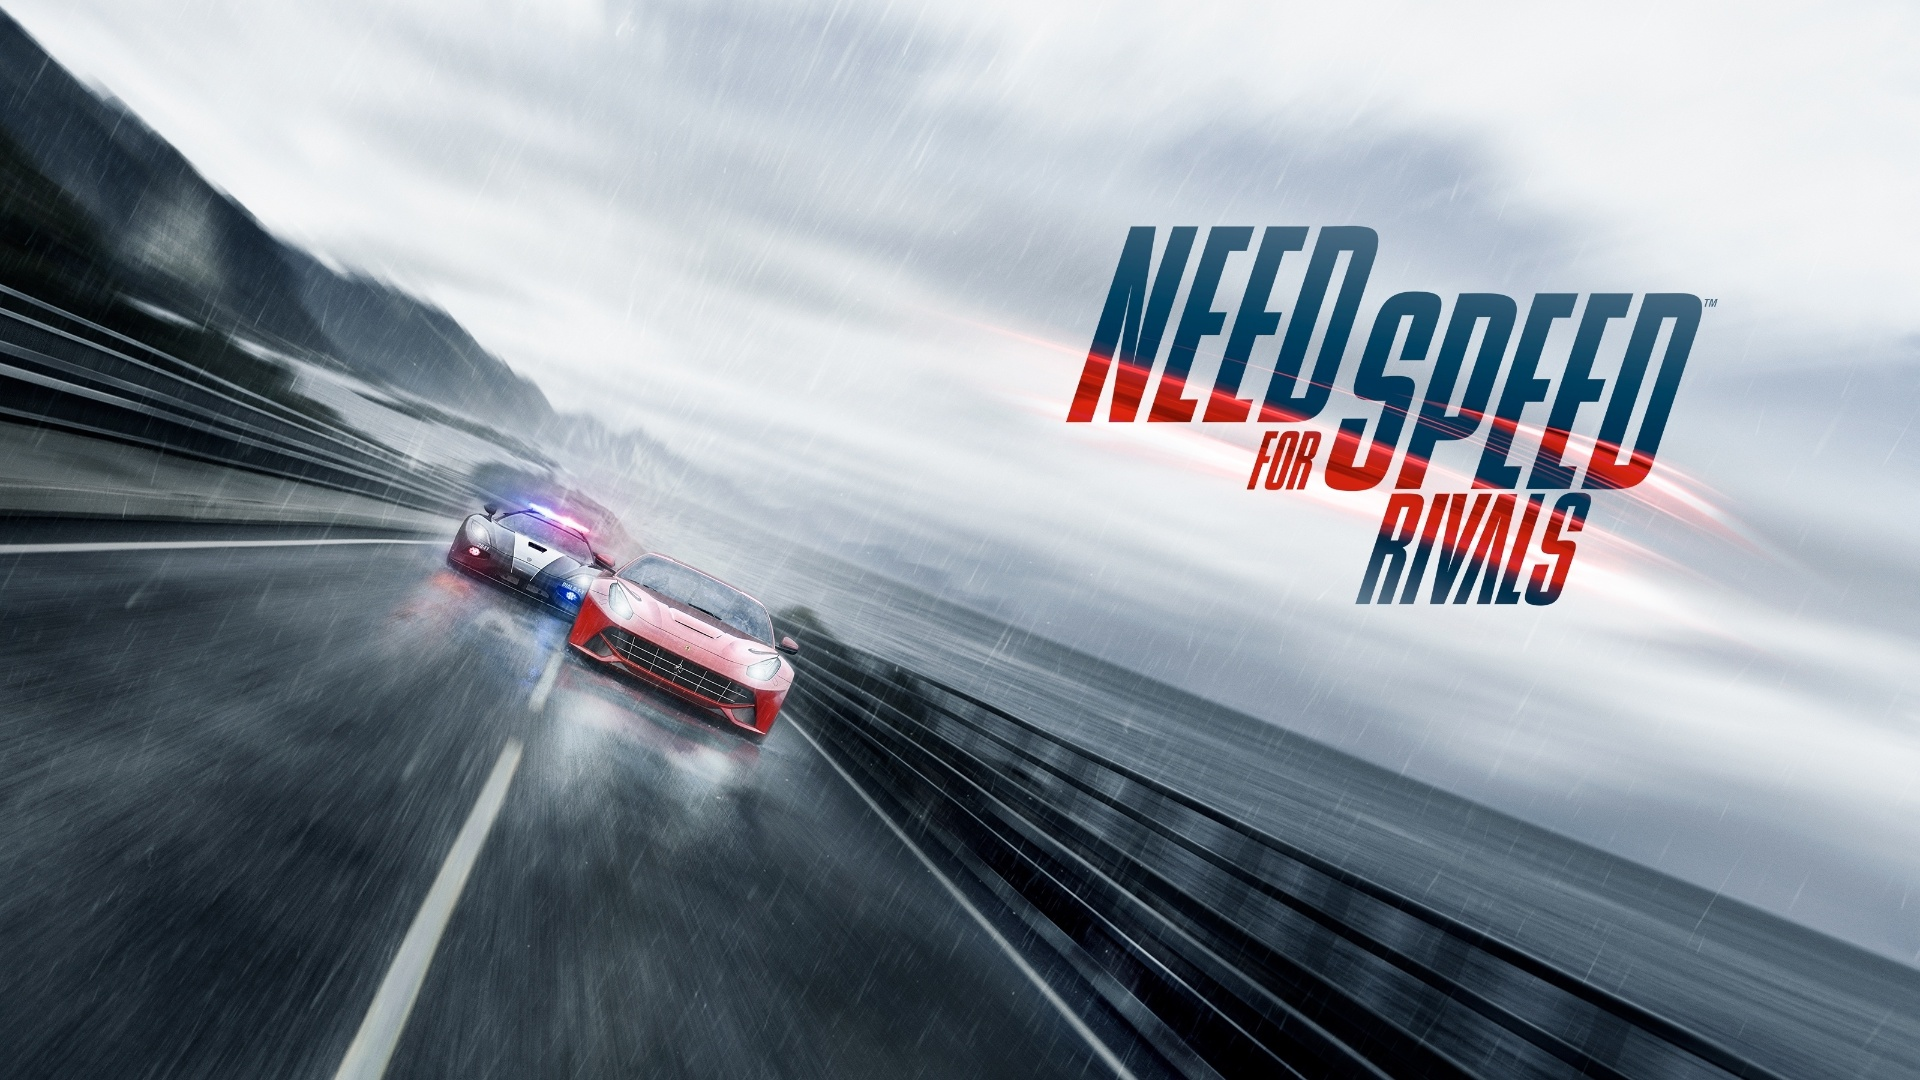 Need for Speed Background - Wallpaper, High Definition .